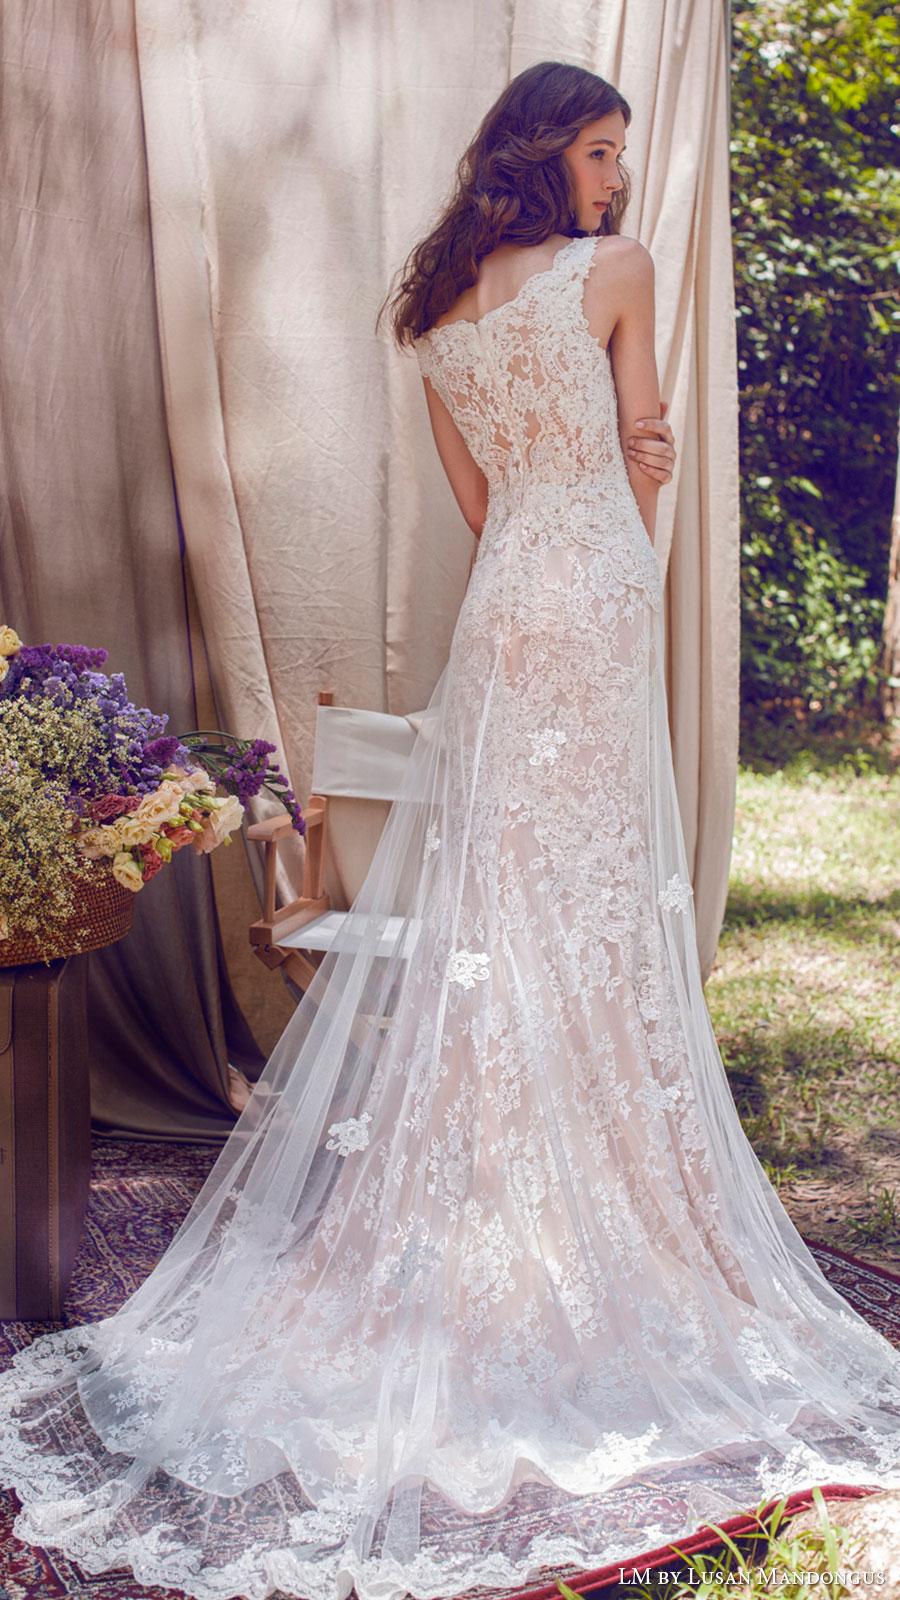 lm lusan mandongus bridal 2017 sleeveless vneck lace trumpet wedding dress (lm3250b) bv illusion back train